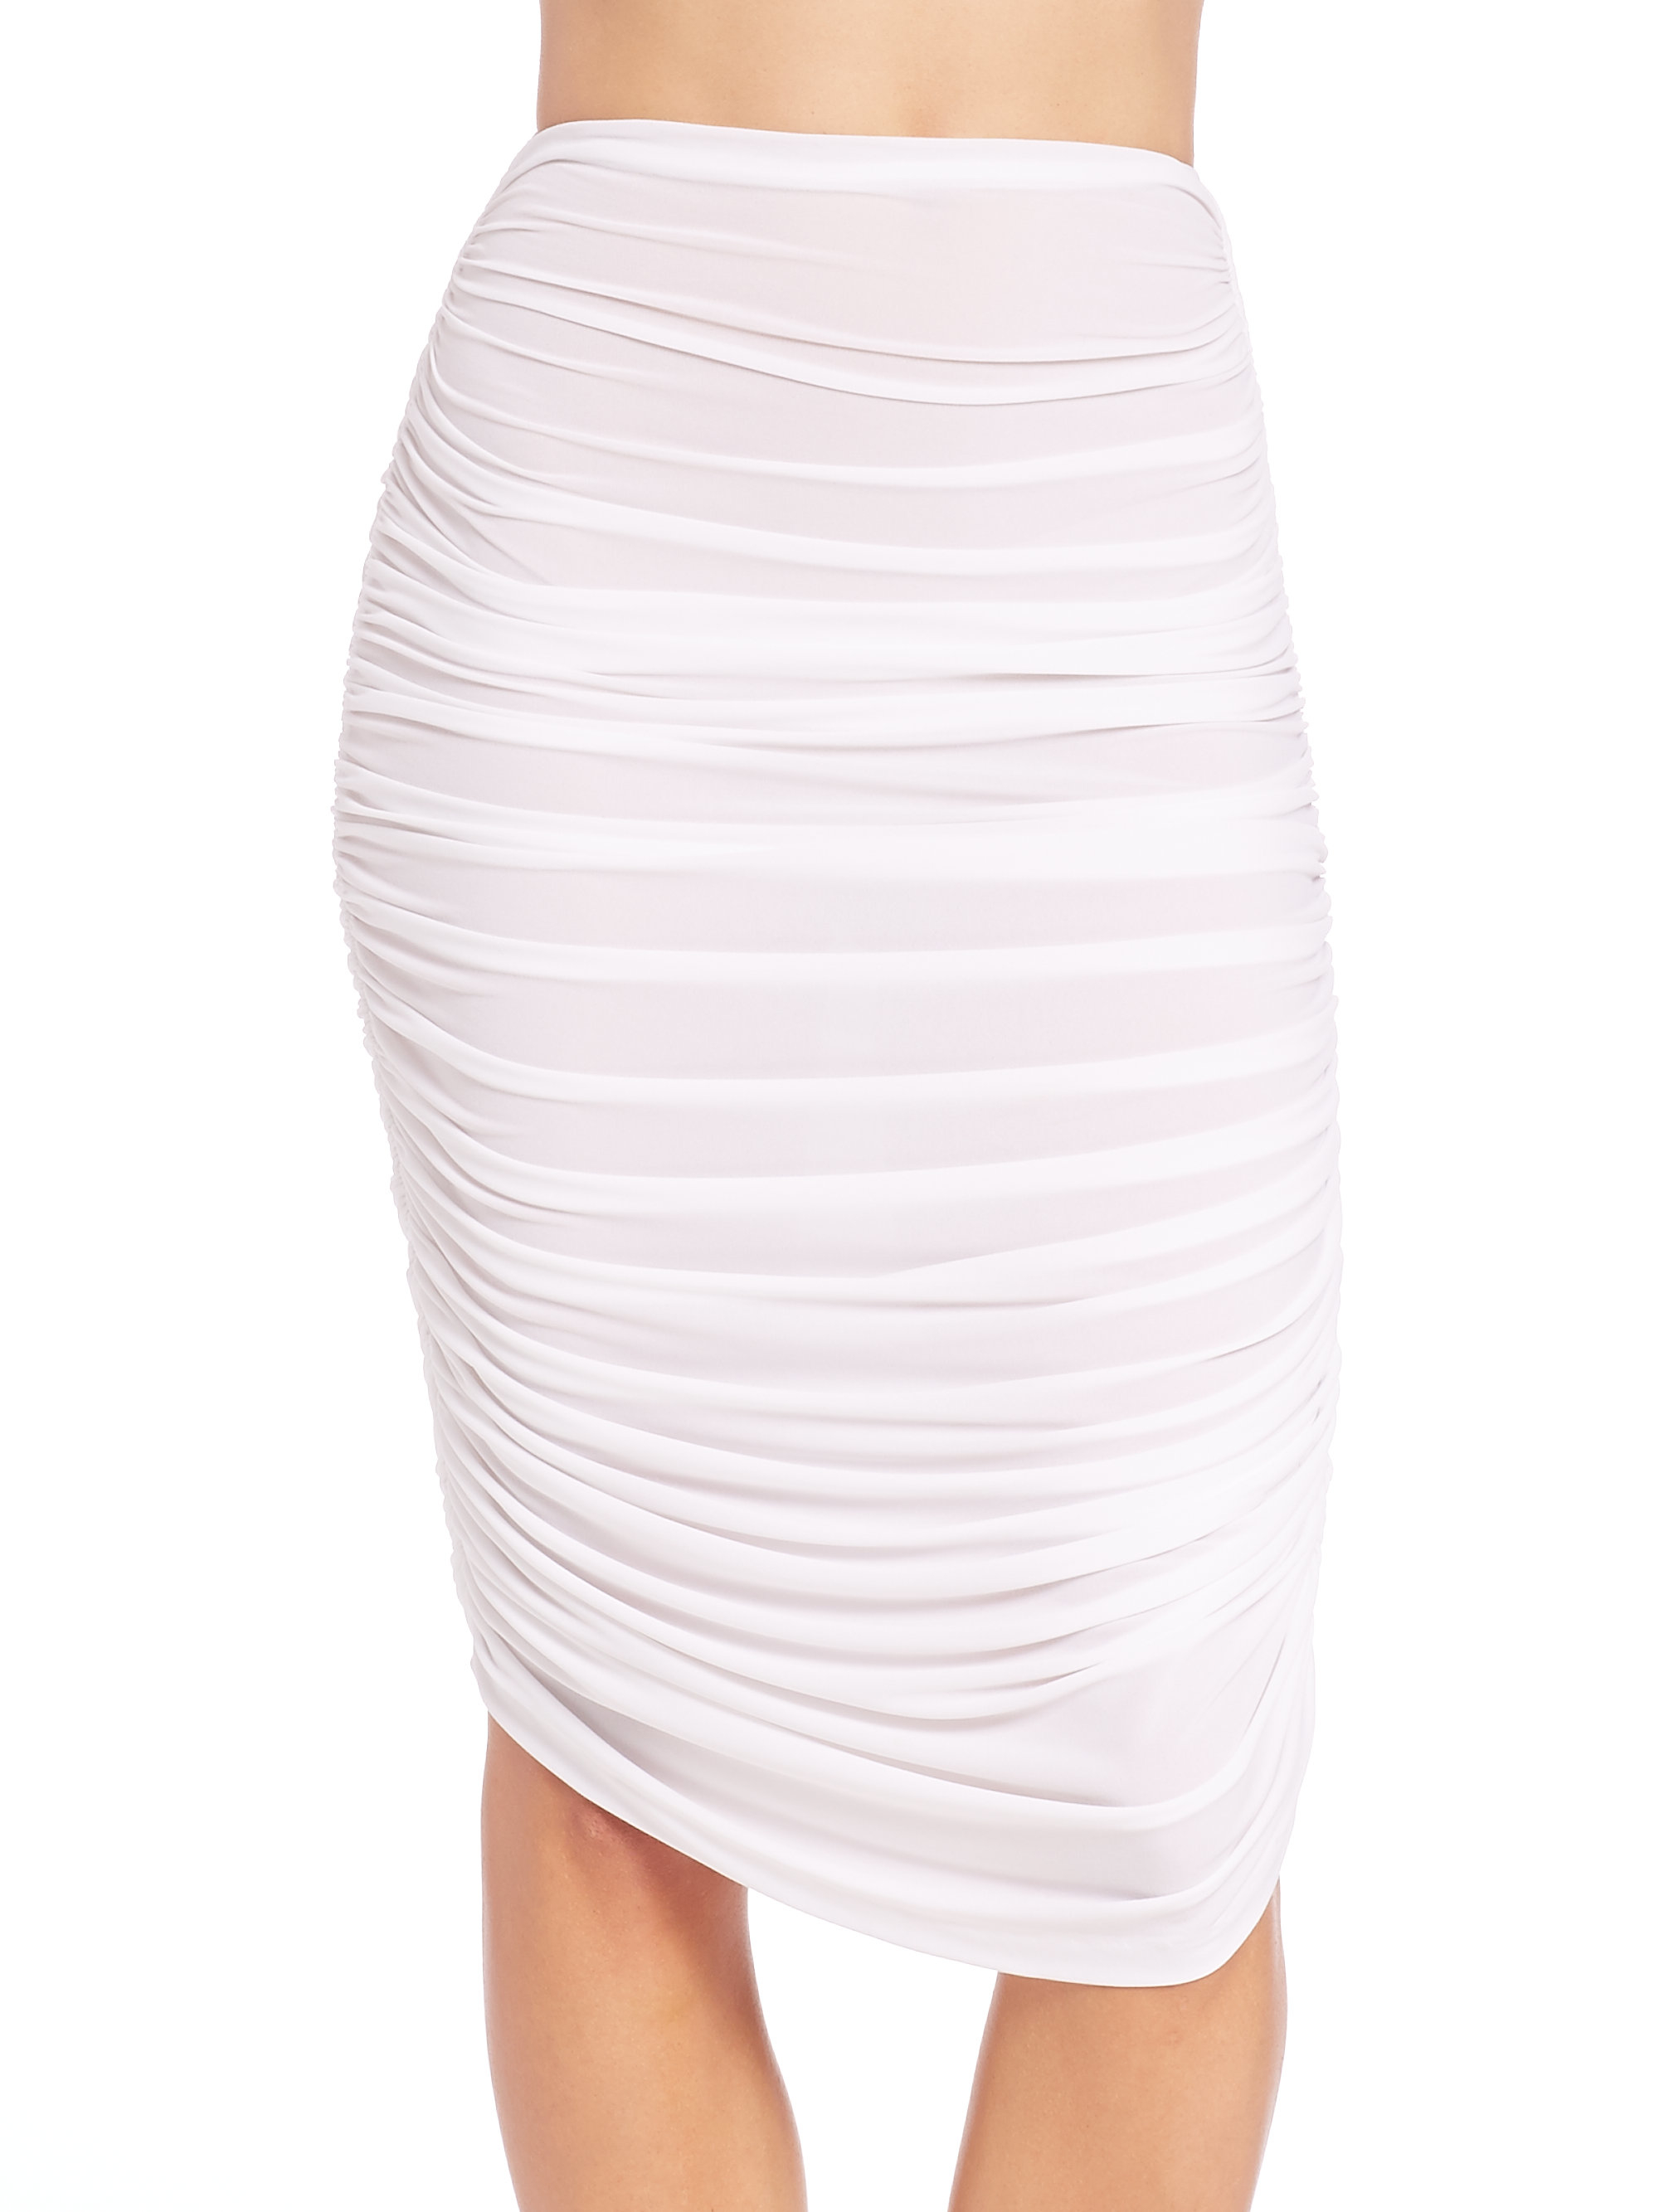 norma kamali ruched swim skirt in white lyst